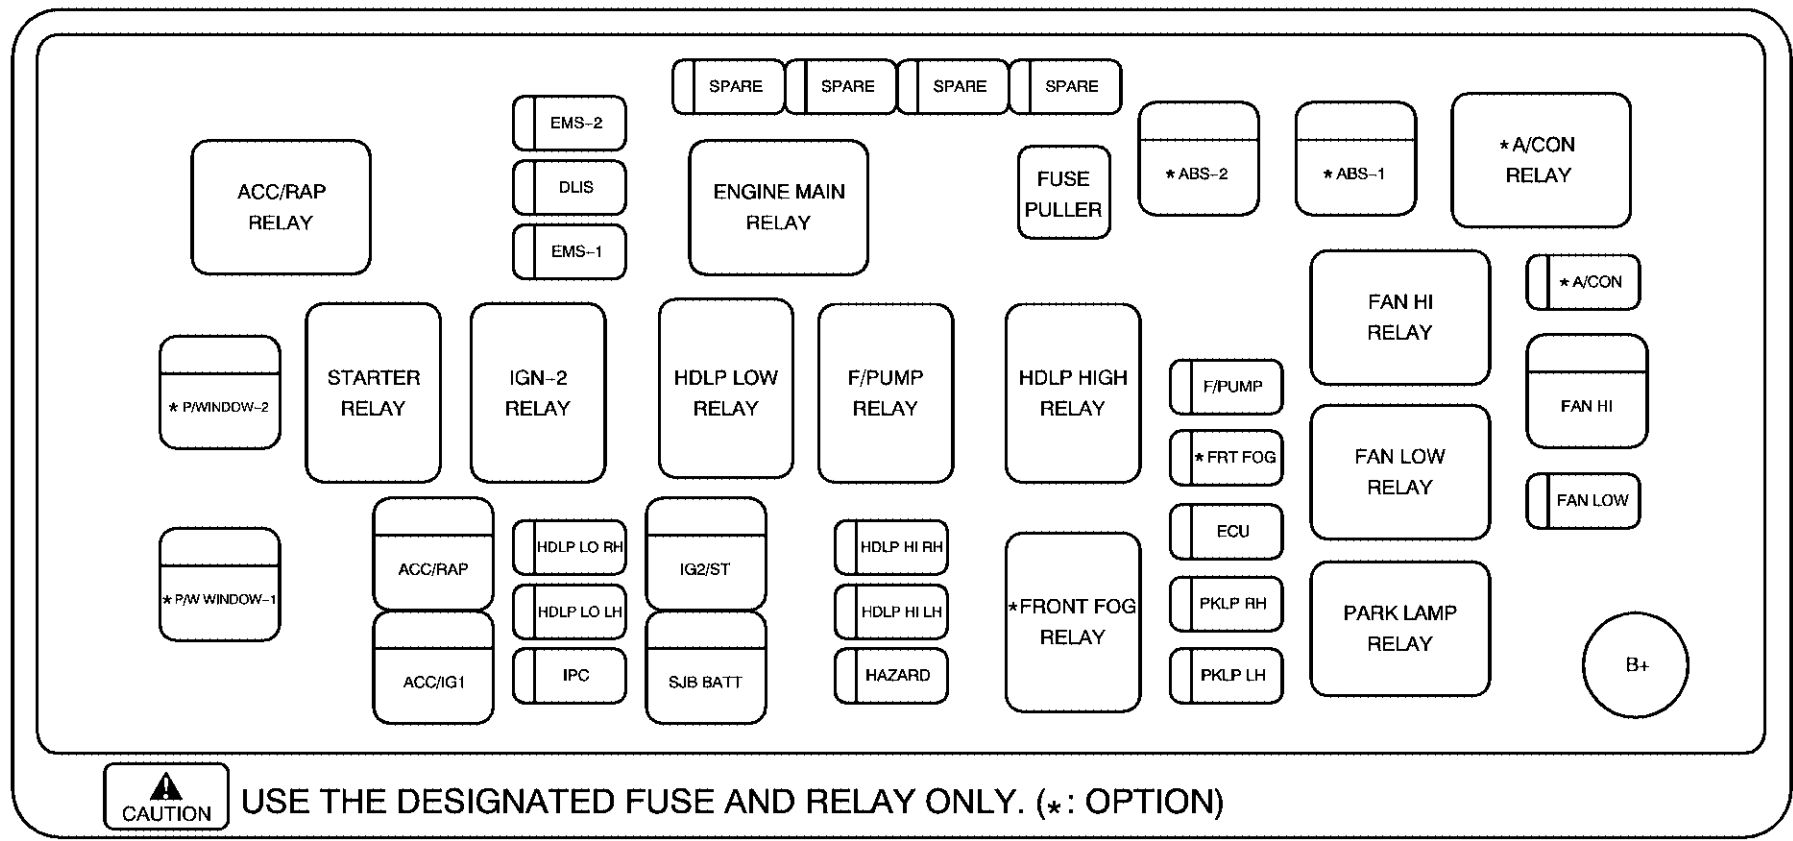 2009 chevy aveo fuse box wiring diagram blogs chevy traverse 2009 chevy aveo fuse box trusted [ 1793 x 841 Pixel ]